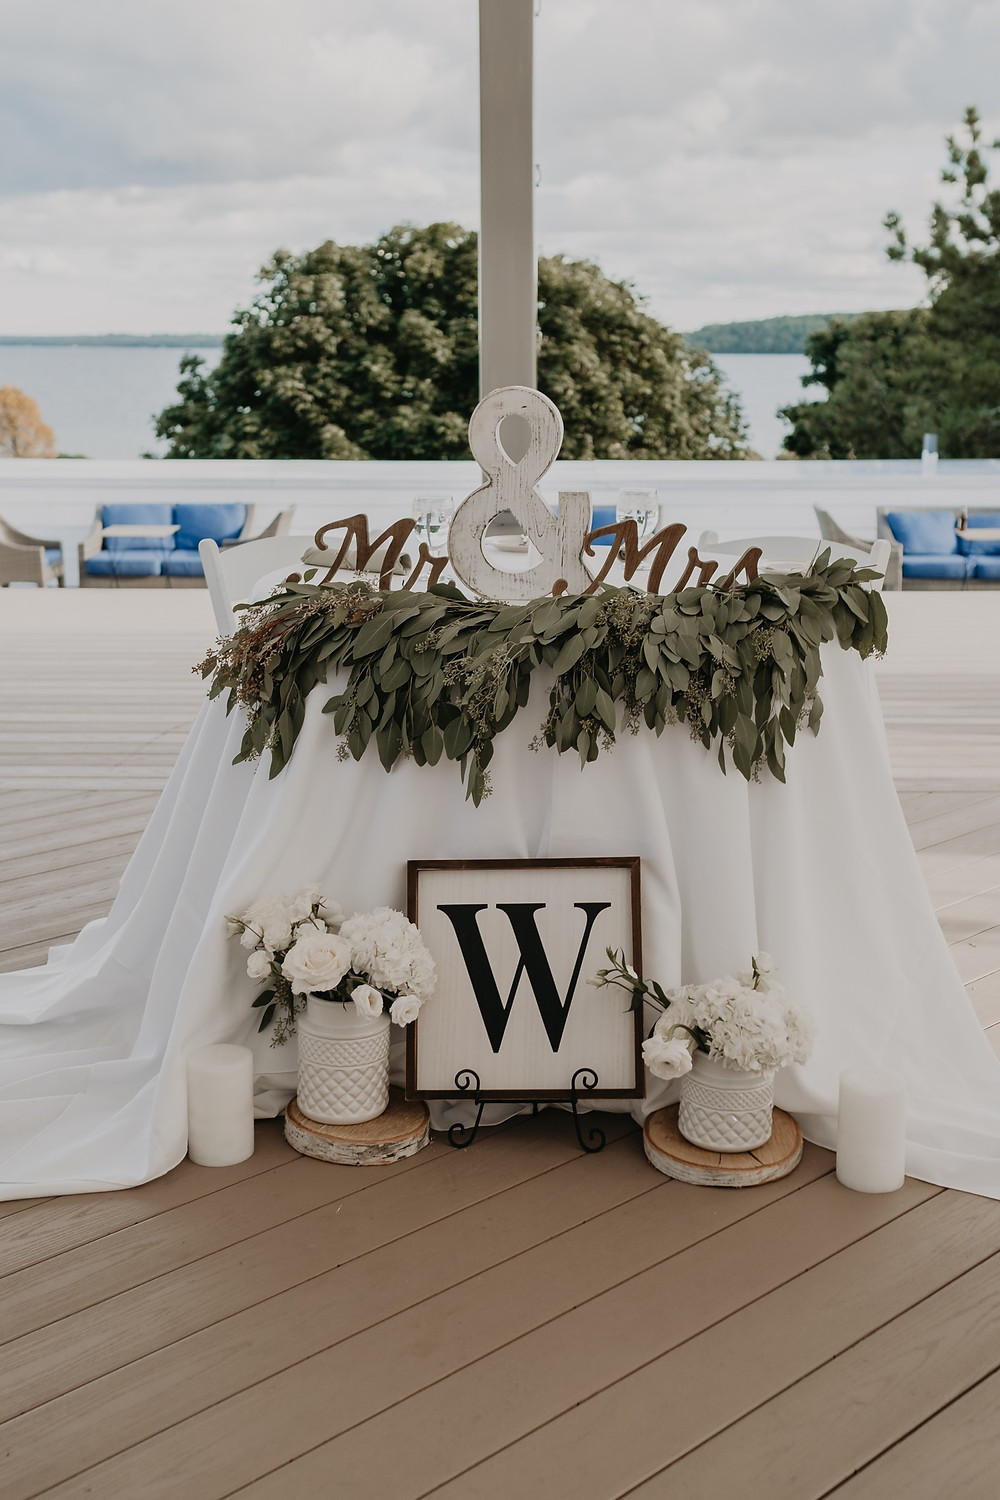 Sweetheart table at Mackinac wedding. Photographed by Nicole Leanne Photography.